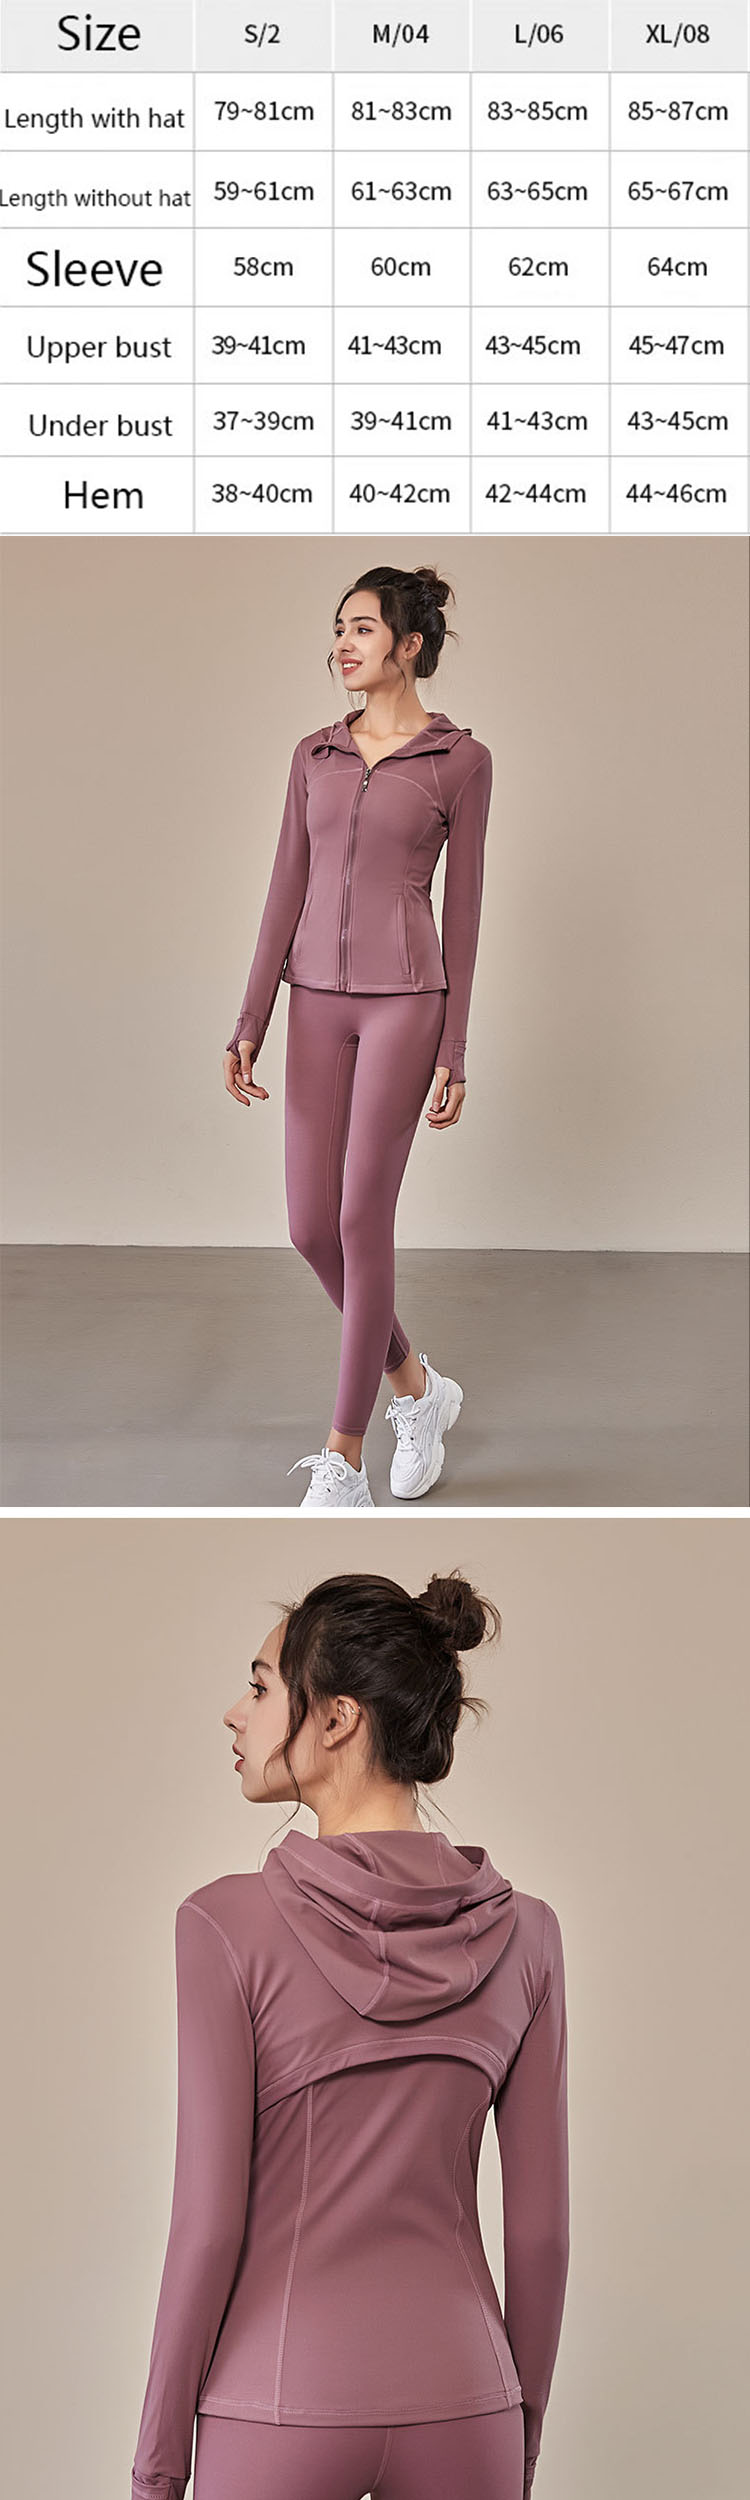 Slim tailoring design, conforms to the curve of the human body, and fits comfortably.